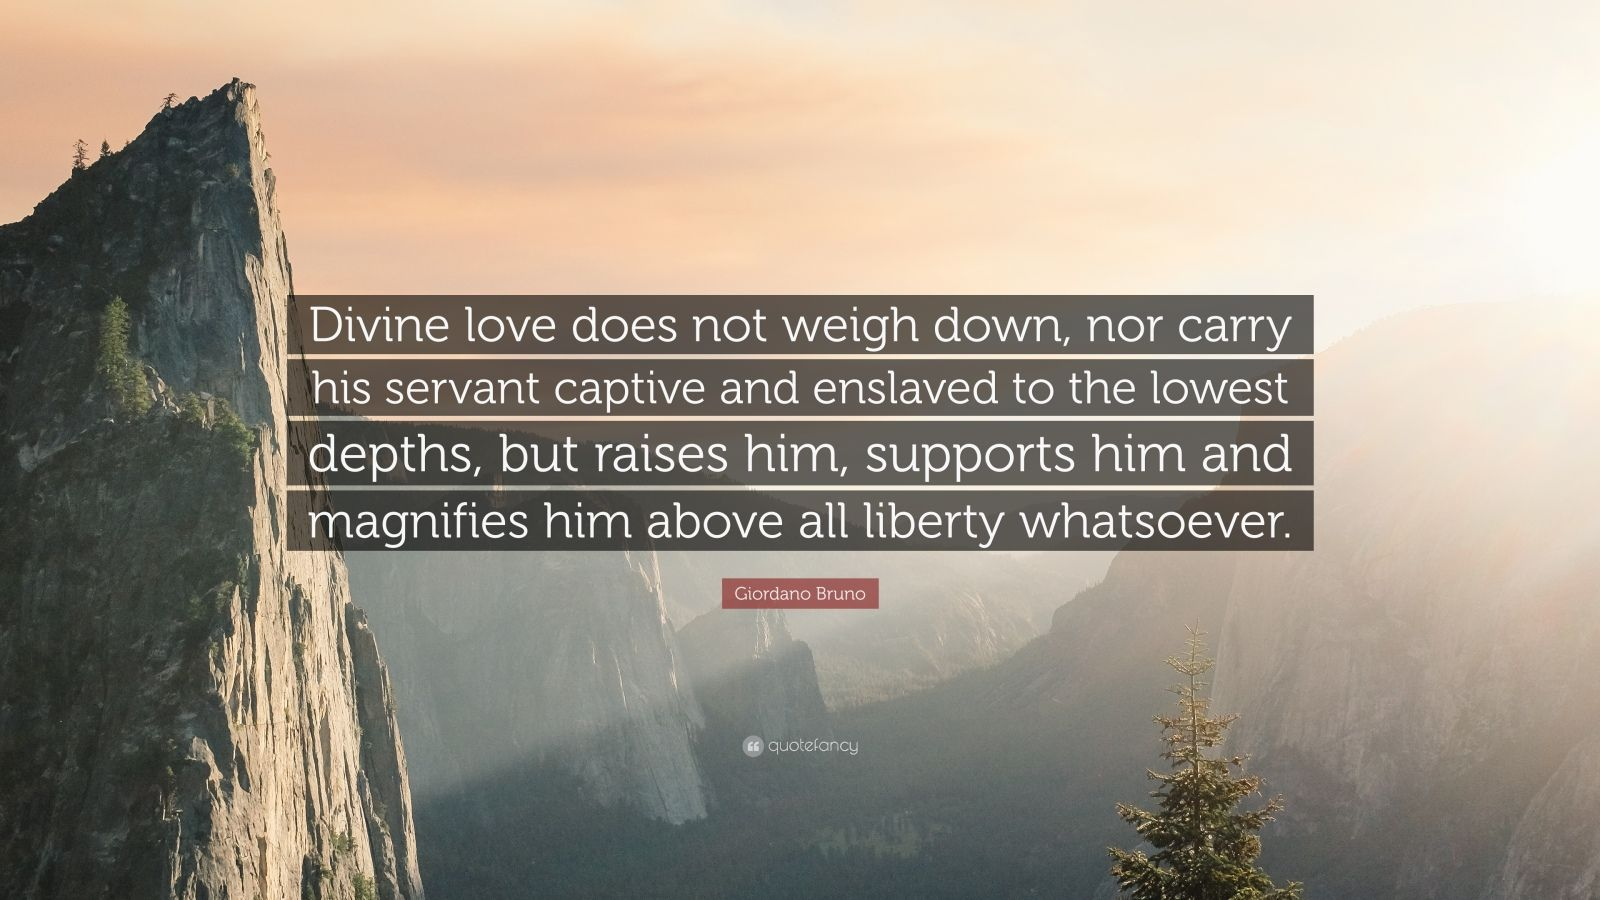 """Giordano Bruno Quote: """"Divine love does not weigh down, nor carry his servant captive and enslaved to the lowest depths, but raises him, supports him and magnifies him above all liberty whatsoever."""""""